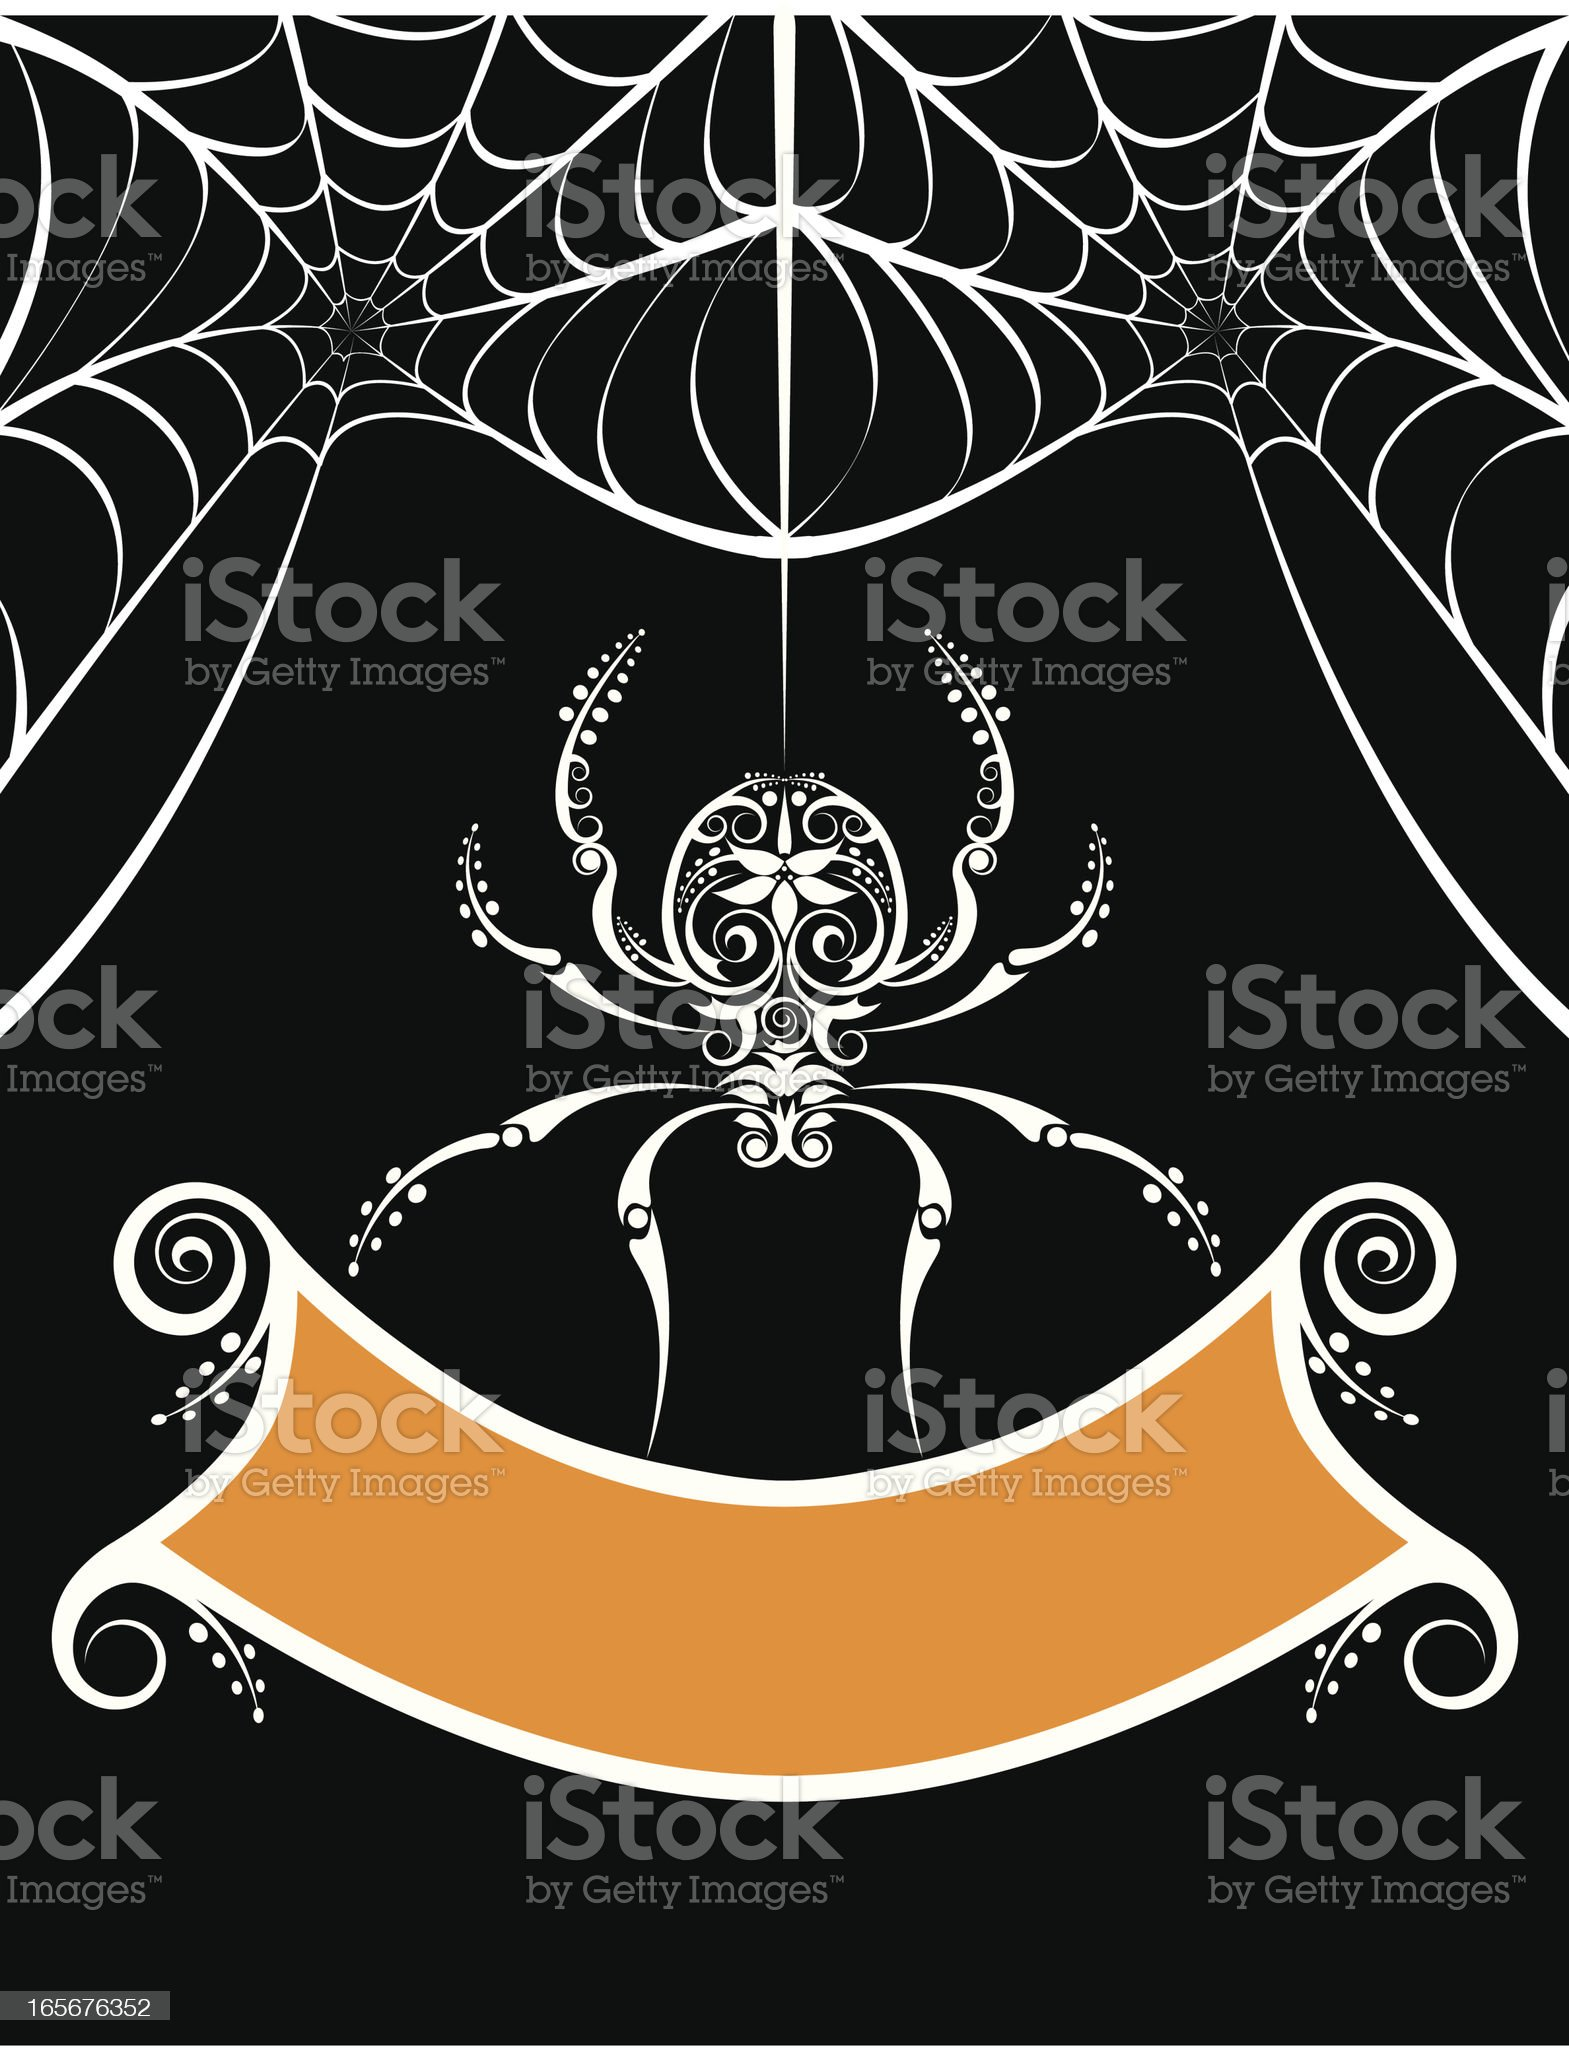 Halloween invitation template with spider and its web royalty-free stock vector art